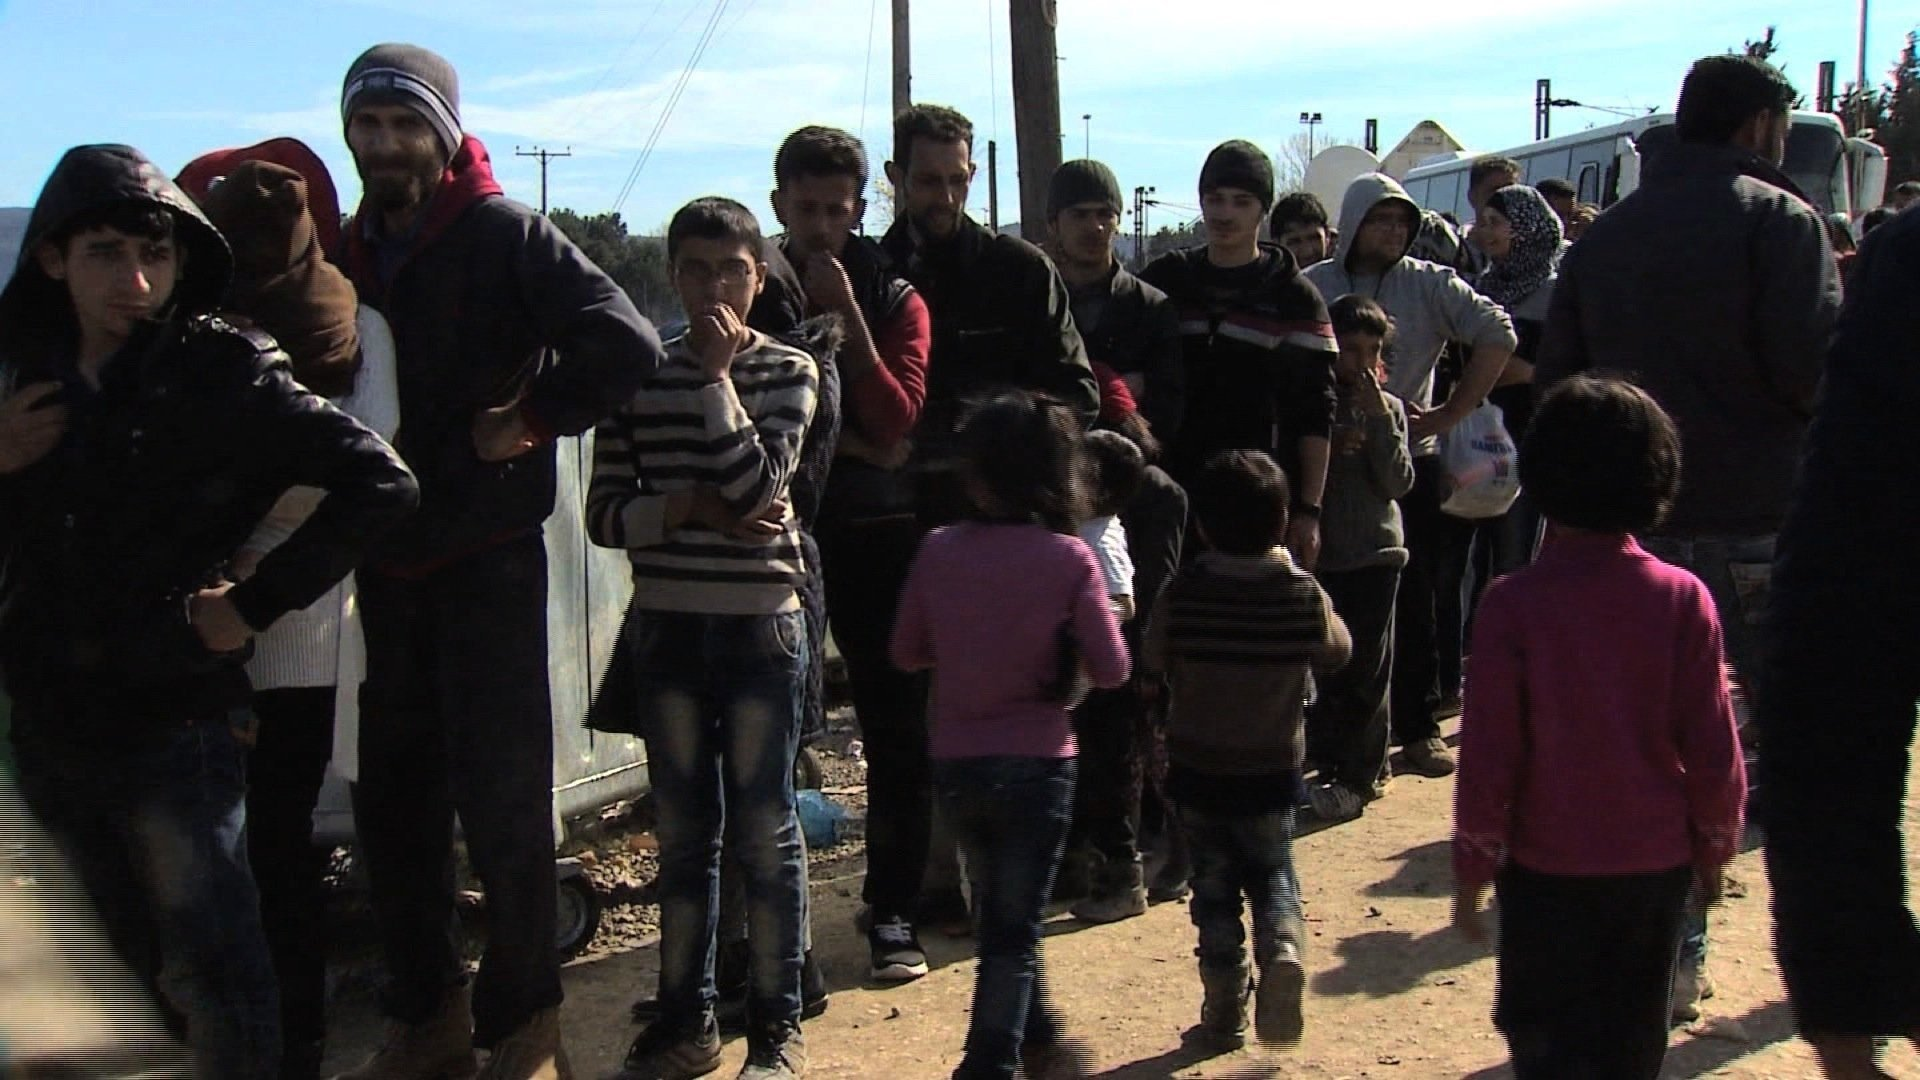 WENY News - Europe's migrant crisis isn't going away, but it is changing